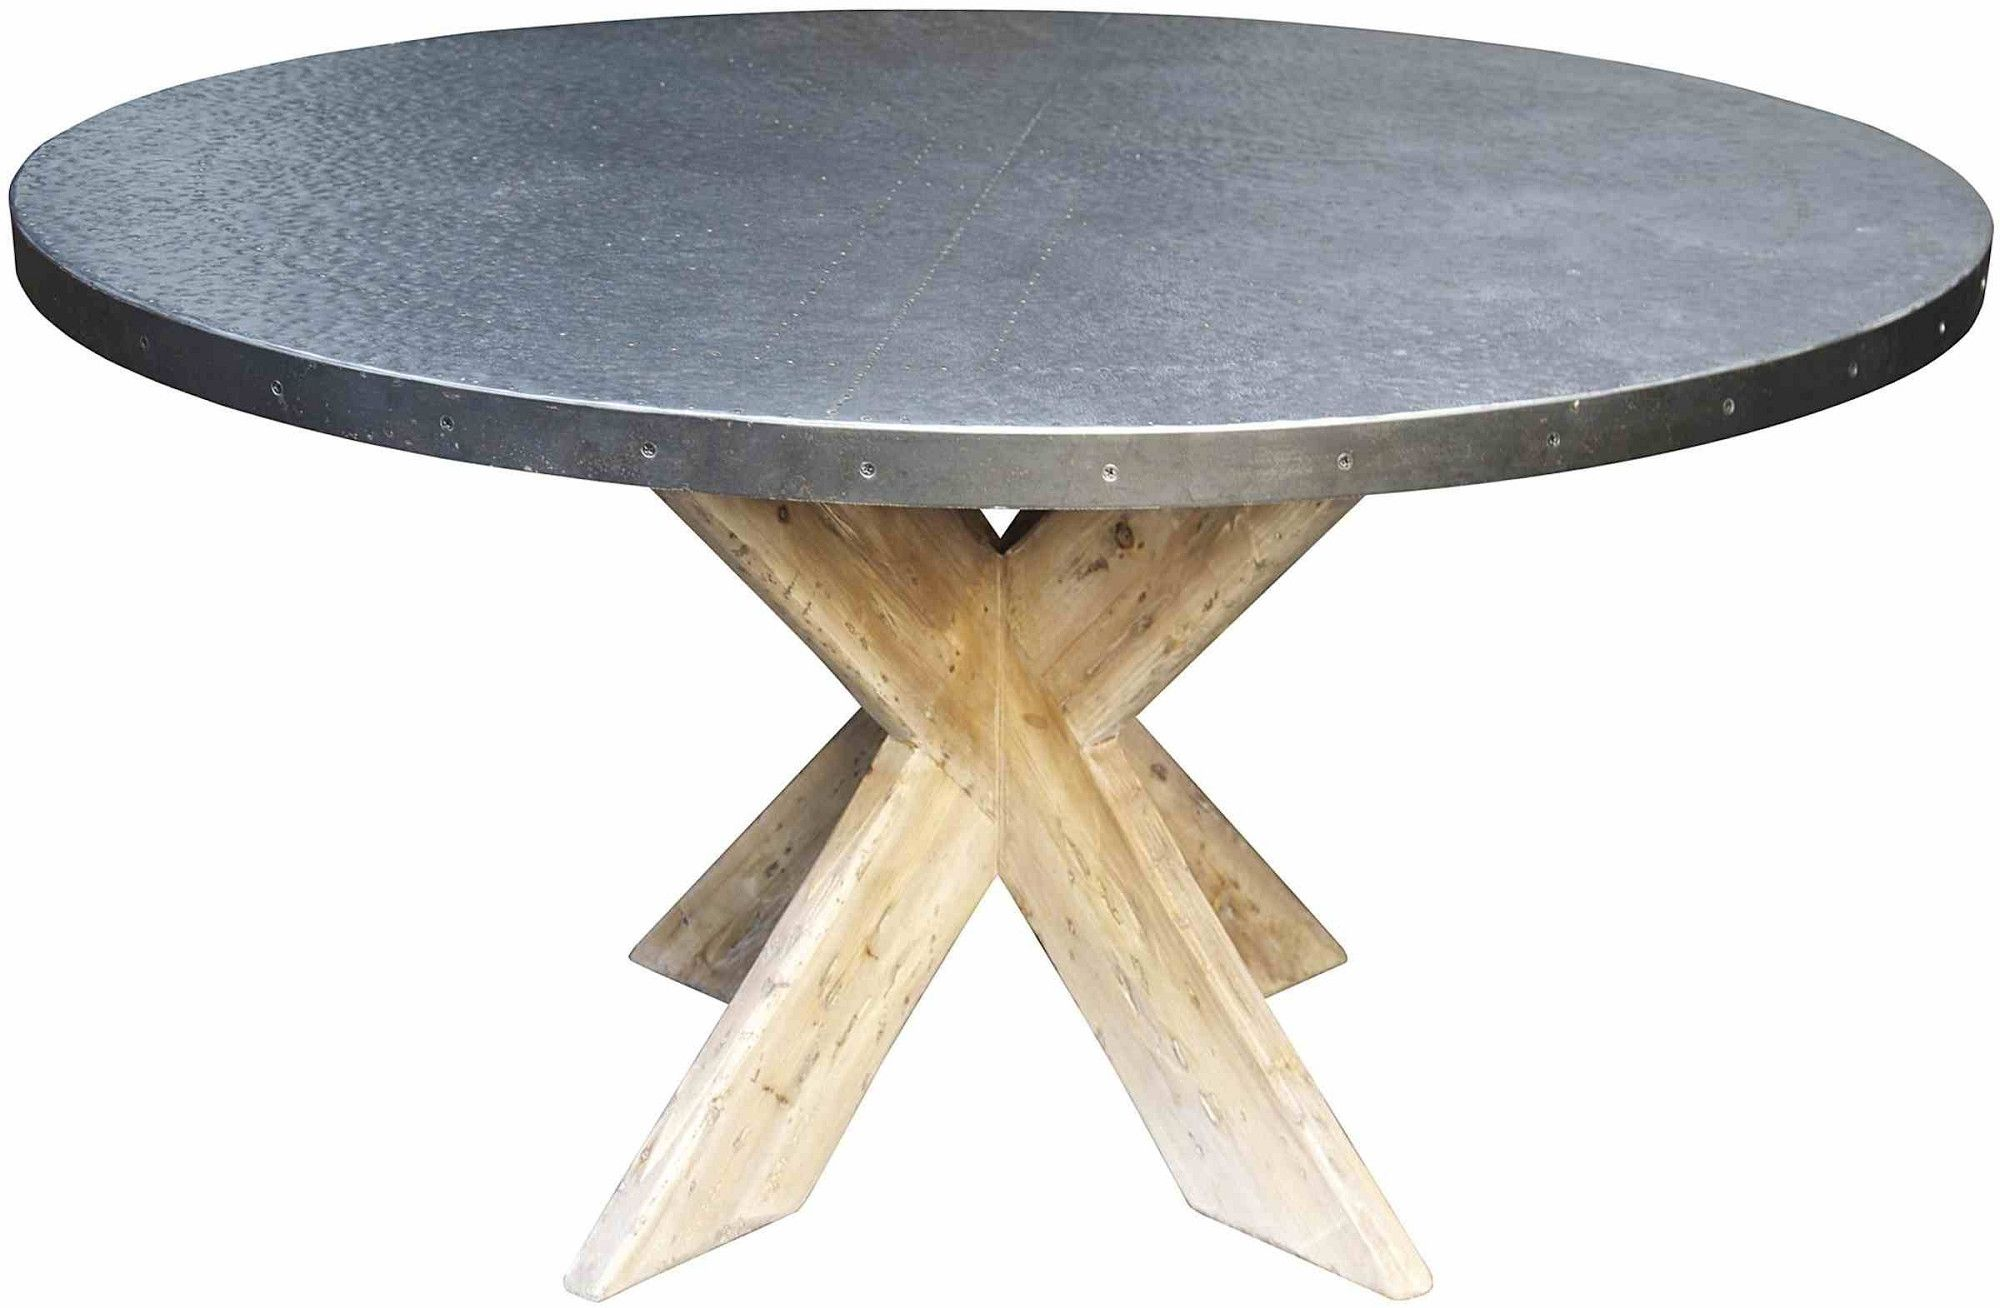 Hayward Zinc Top Round Dining Table With X Base Dining Table Round Dining Table Dining Table Sizes